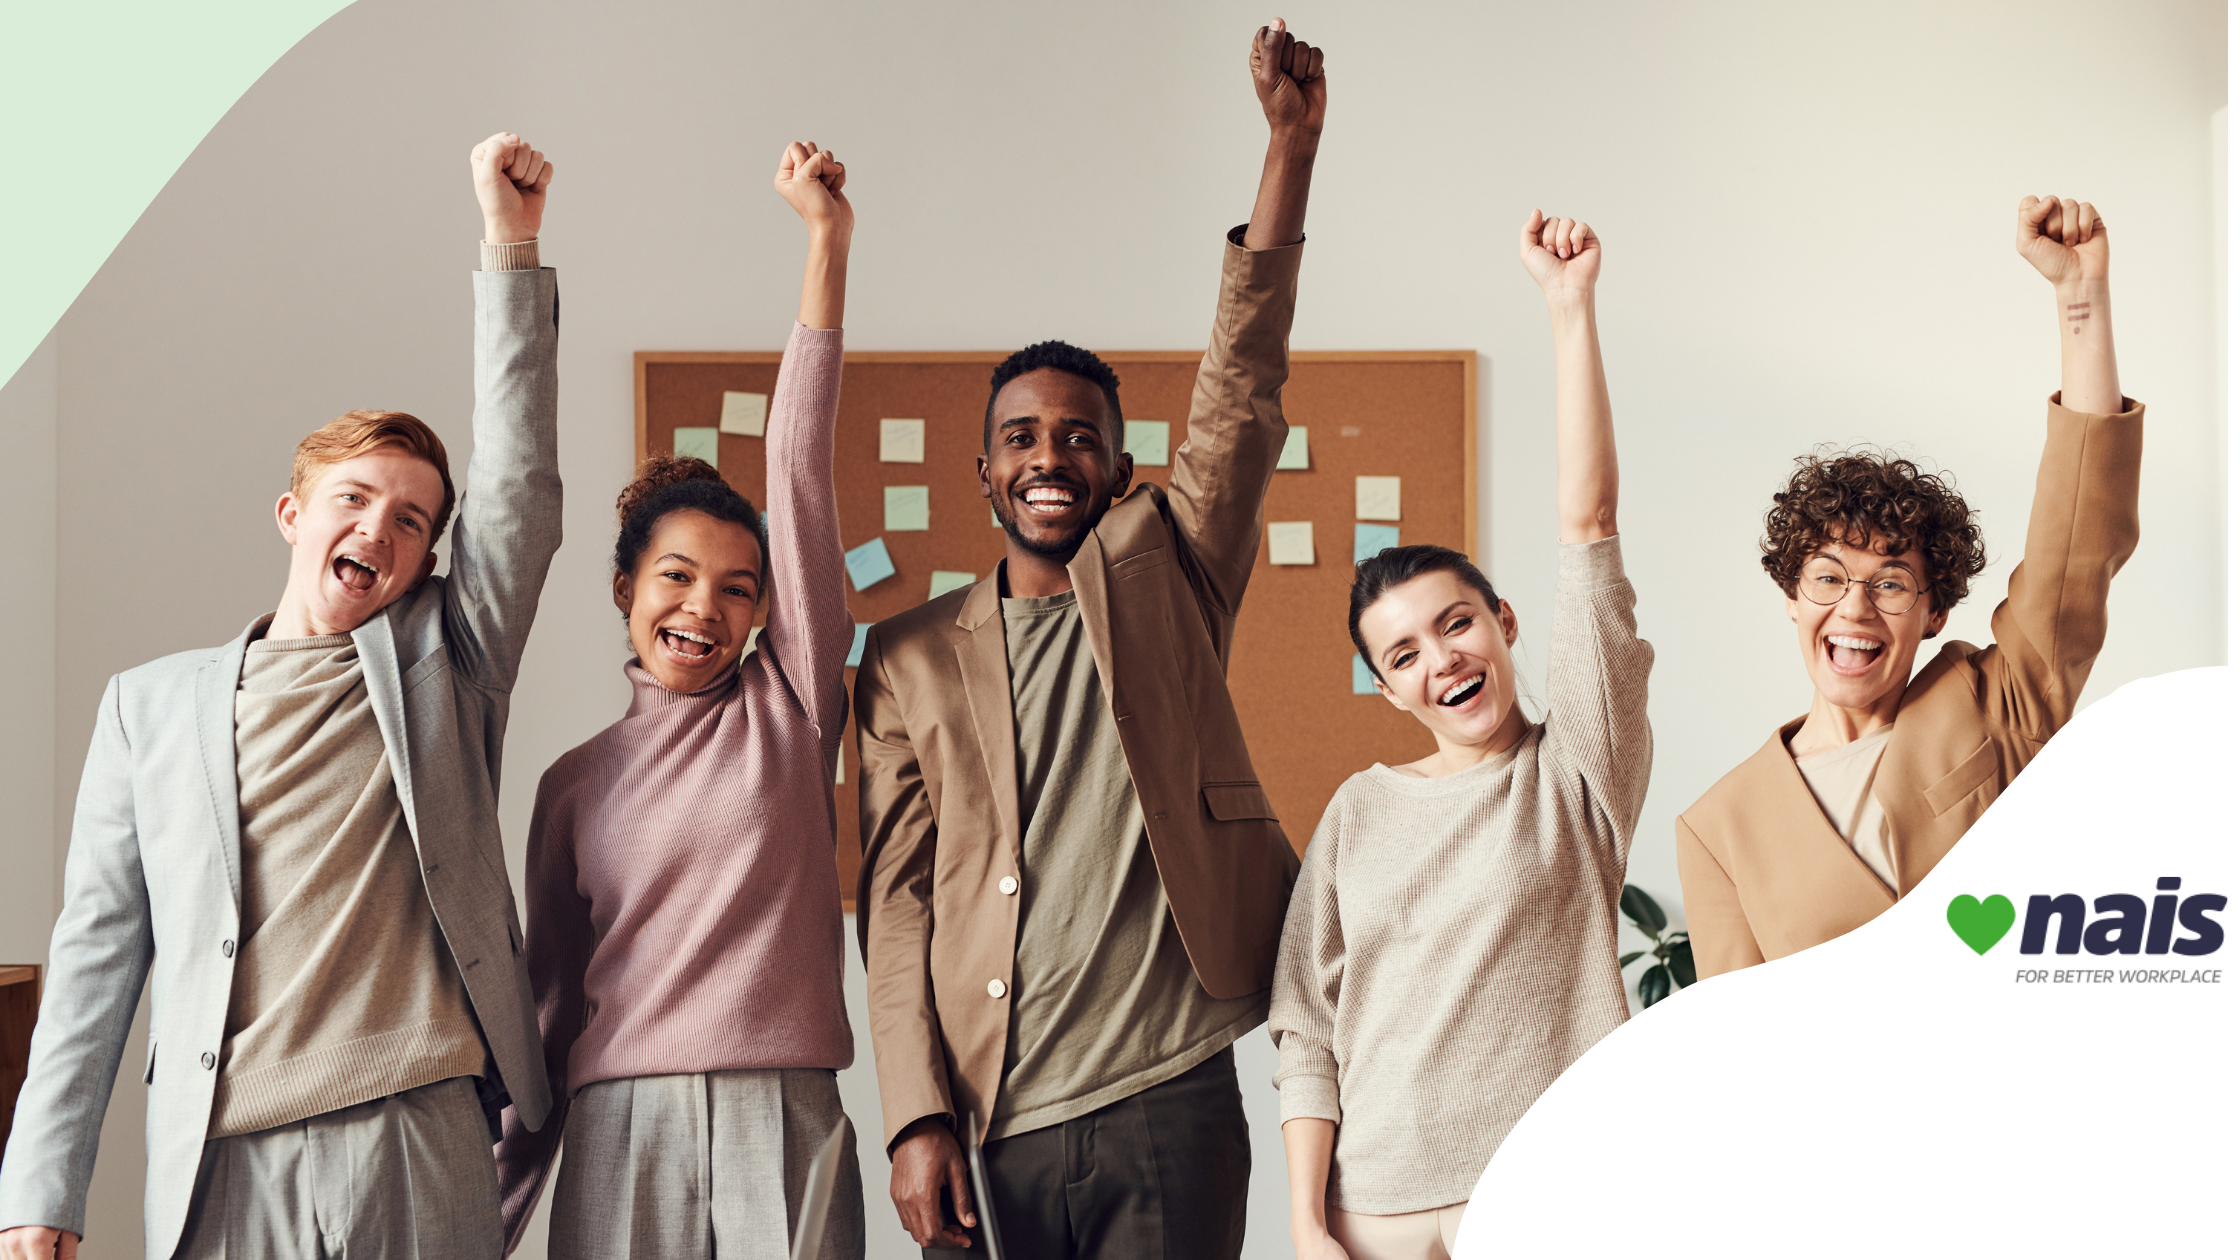 People raising their arms up in the air and smiling in an office